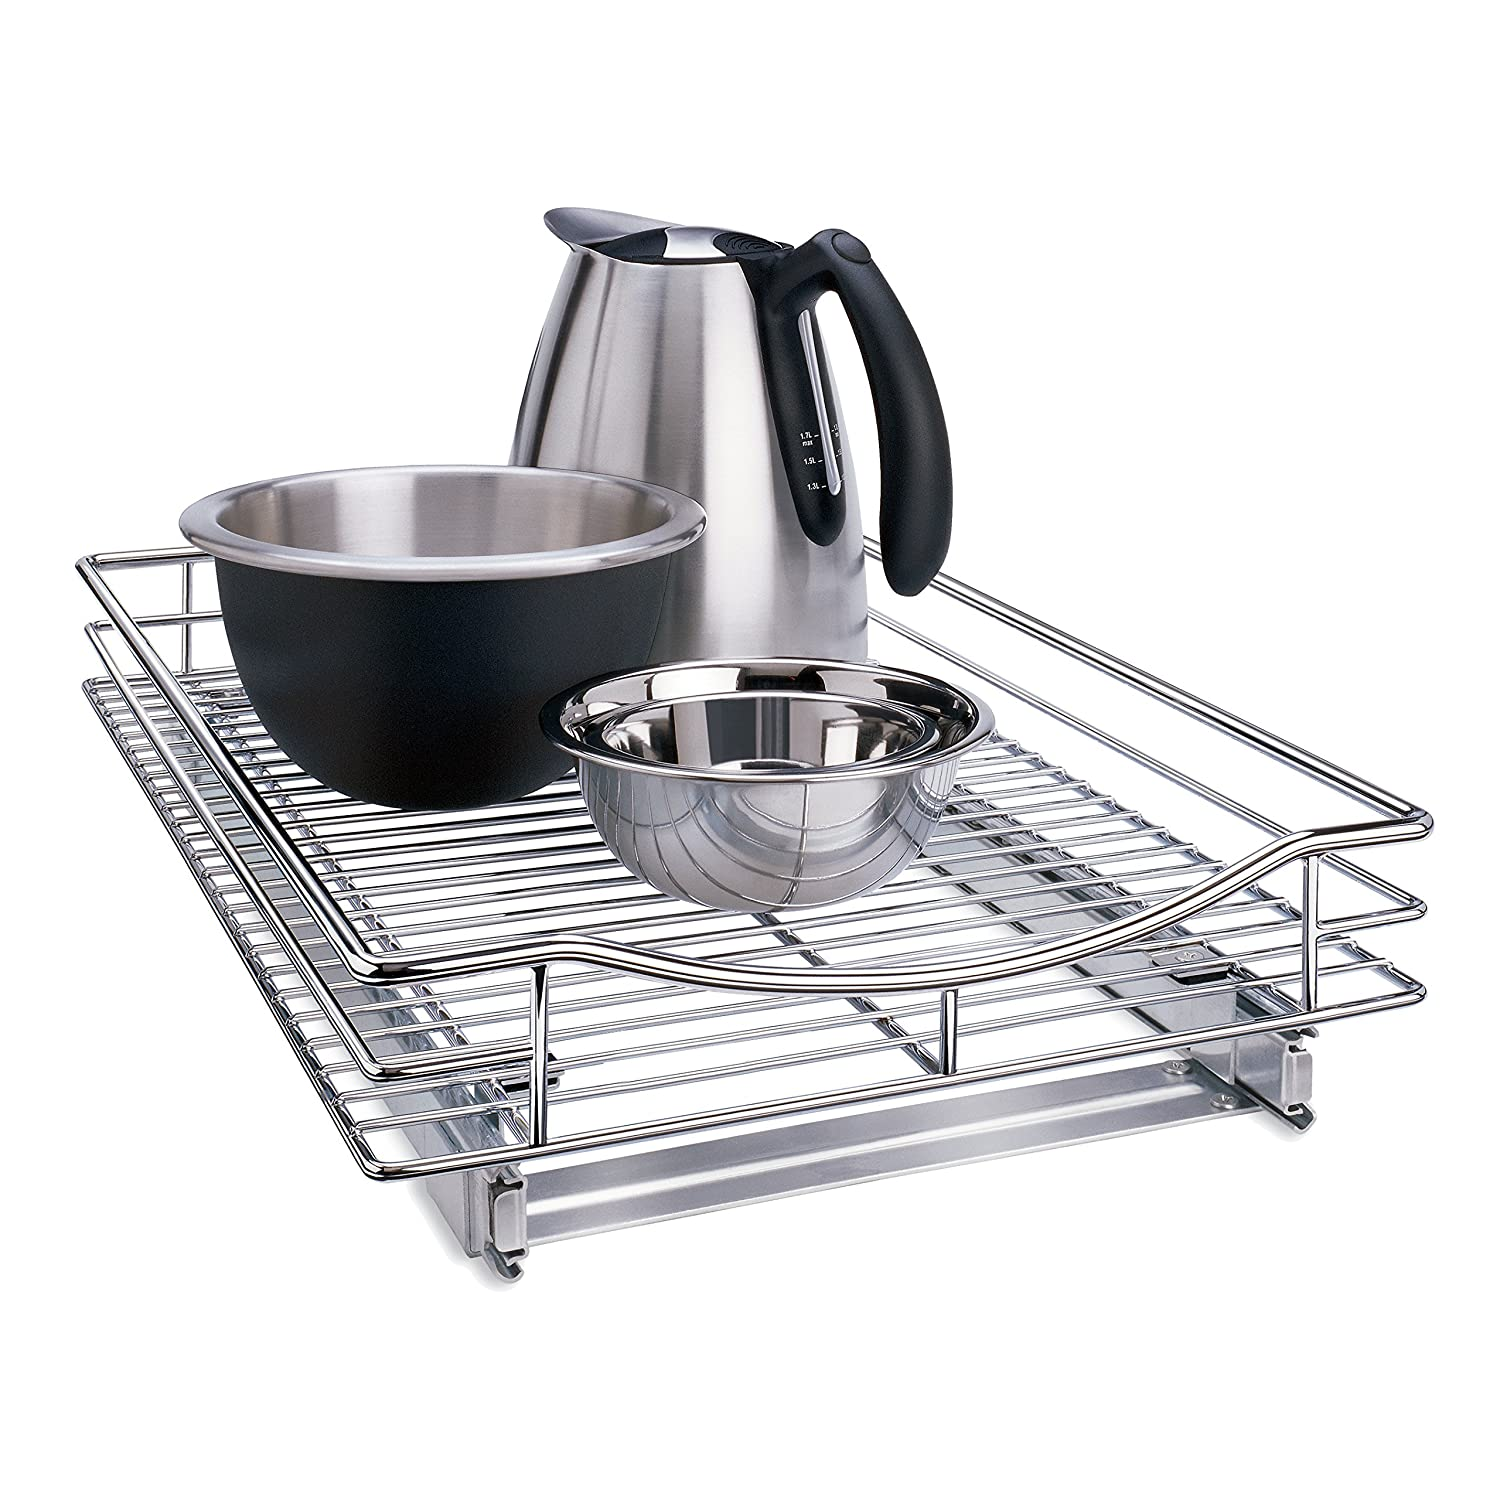 "Lynk Professional Organizer with Pull Out Under Out Under Cabinet Sliding Shelf 14"" W x 18"" D x 4"" H Chrome"